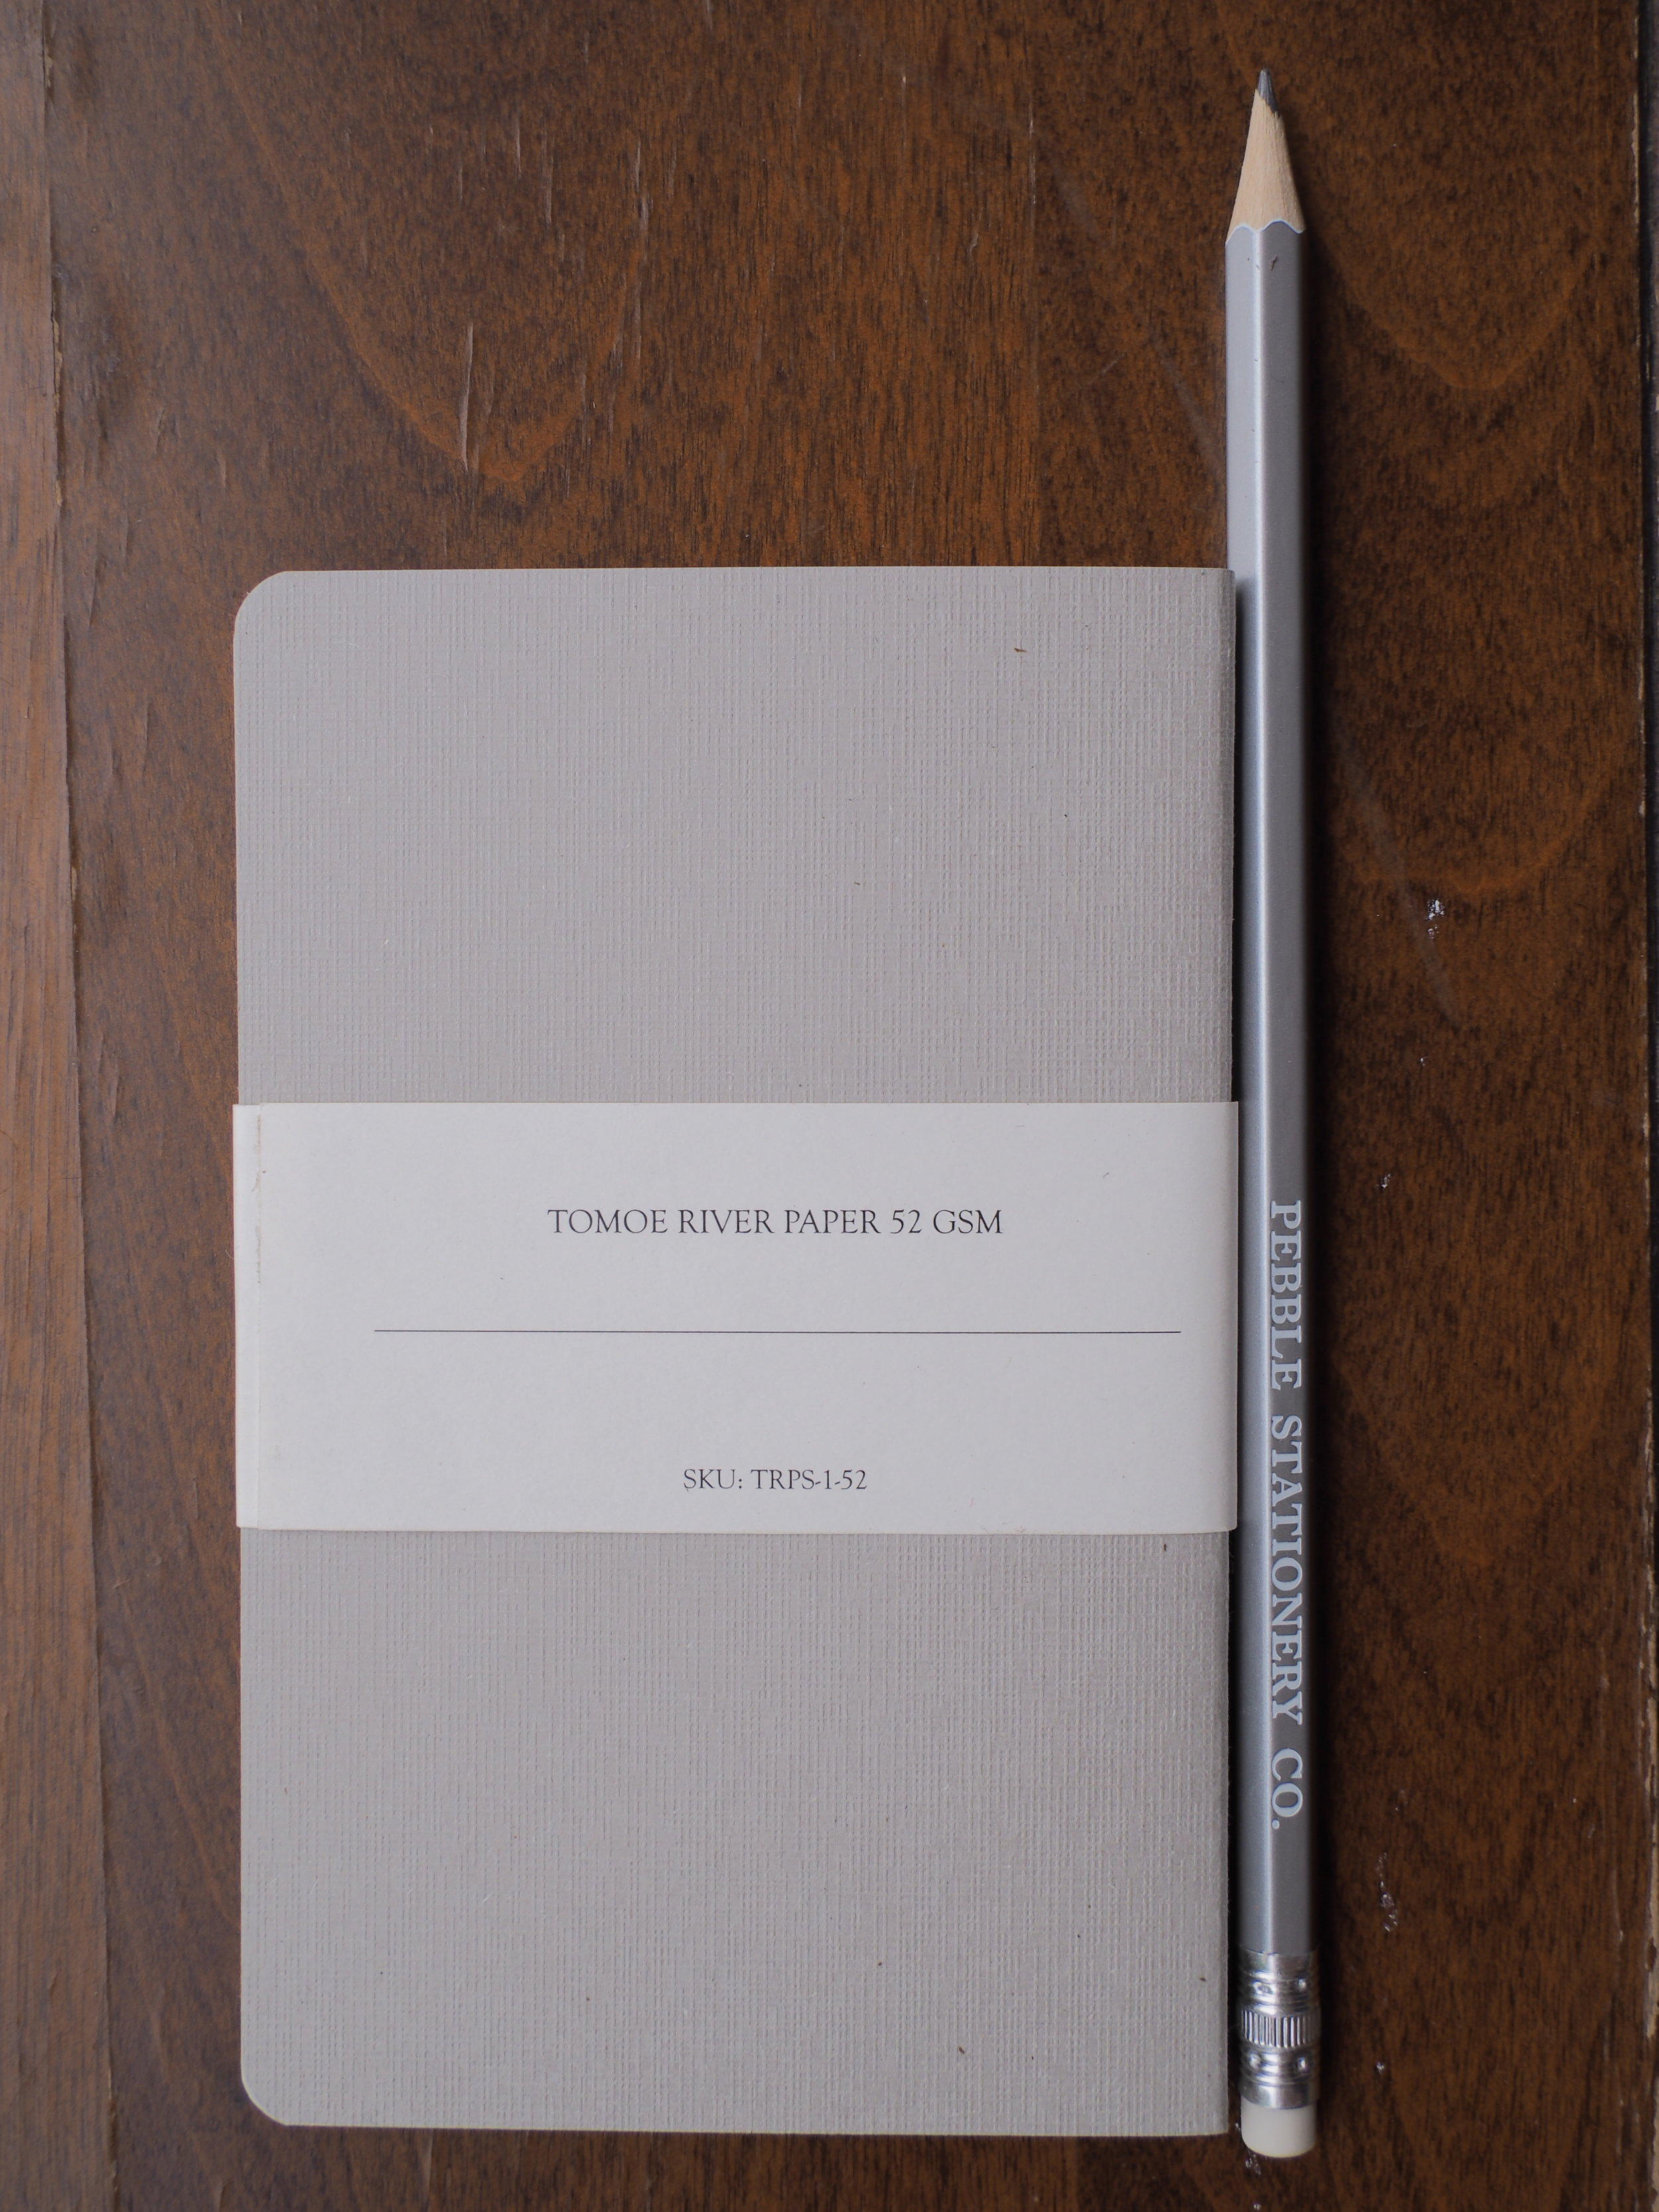 Pencil and Notebooks Wrapped 3.JPG